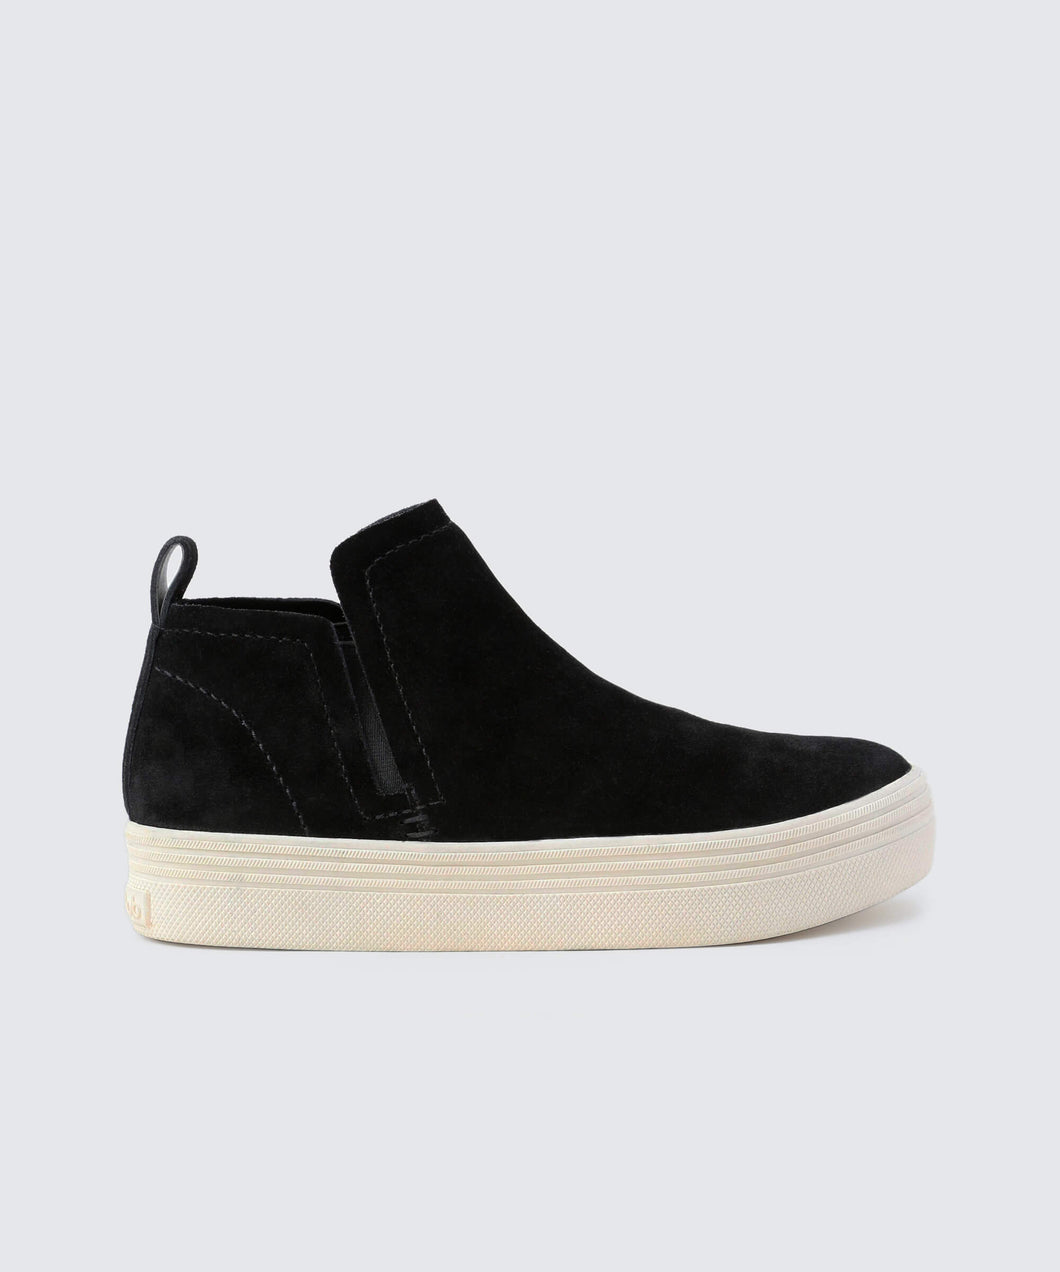 TATE SNEAKERS IN BLACK -   Dolce Vita